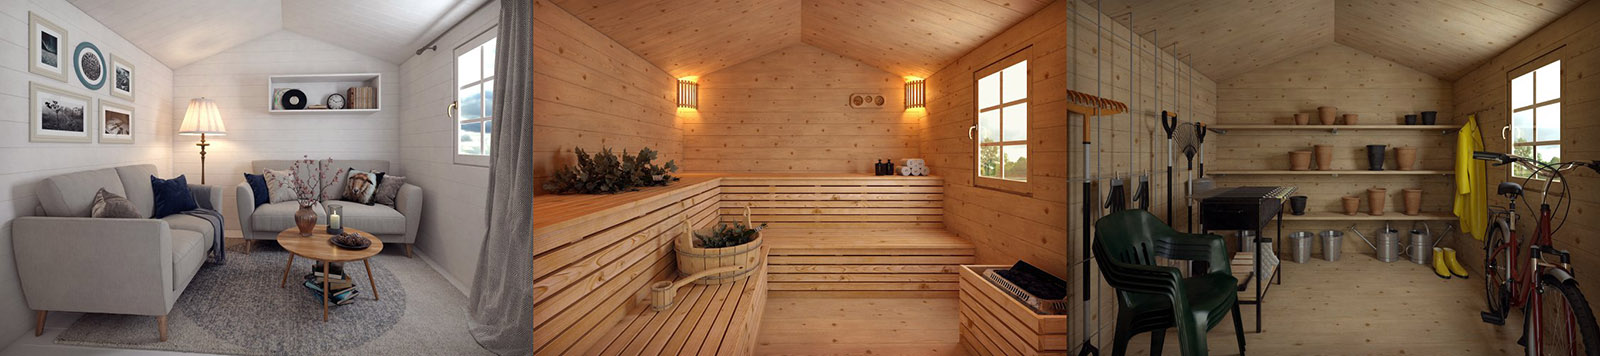 A variation of garden cabin interiors leisure sauna store room